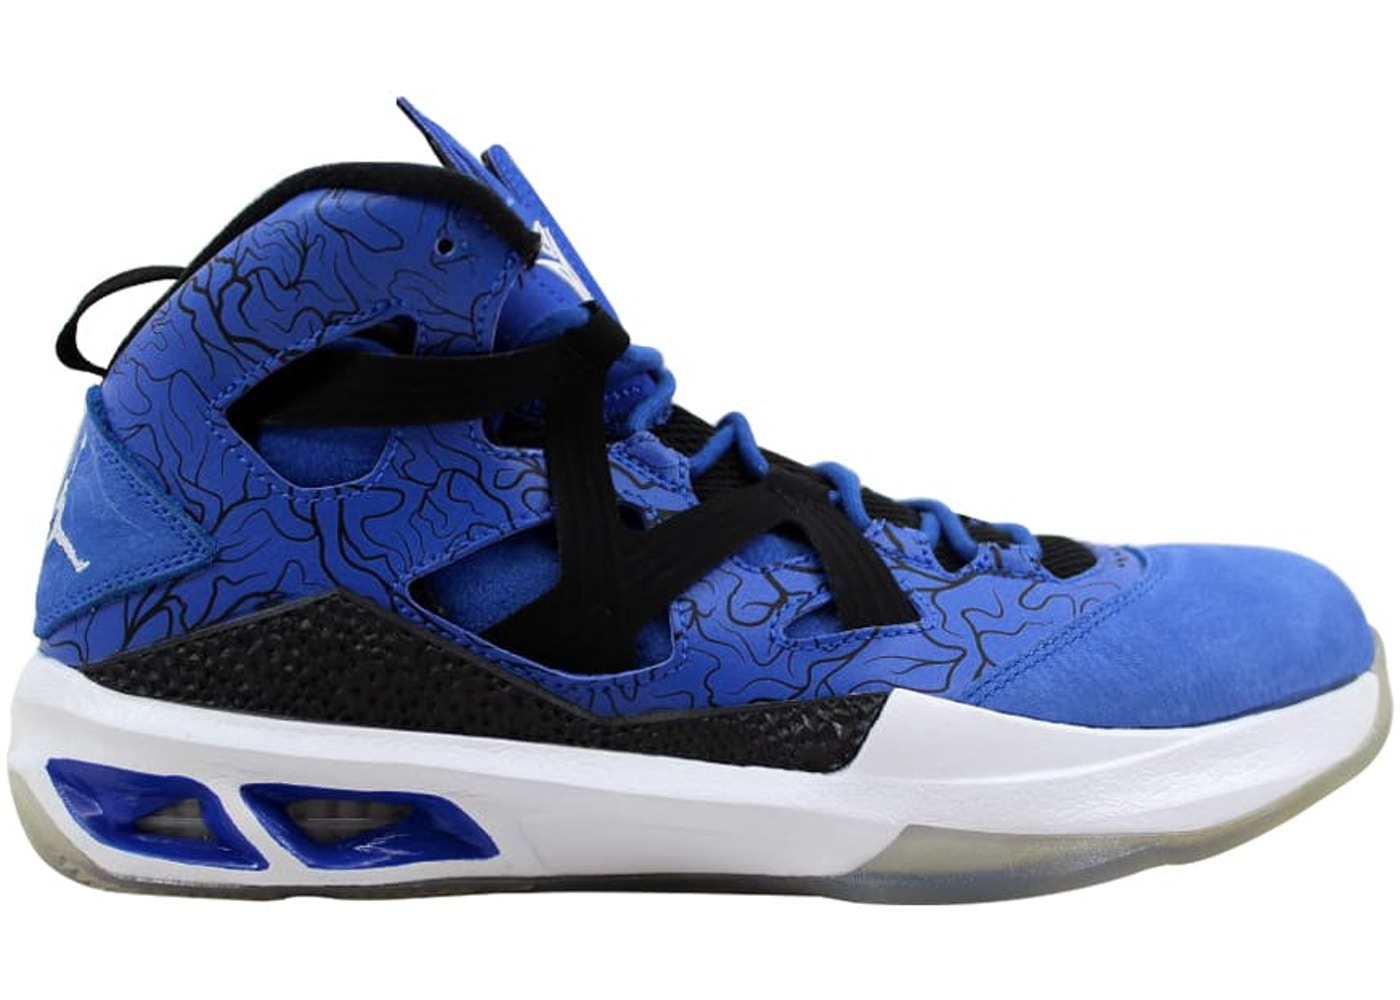 hot sale online 266ee 94c31 Jordan Melo M9 Game Royal - 551879-401